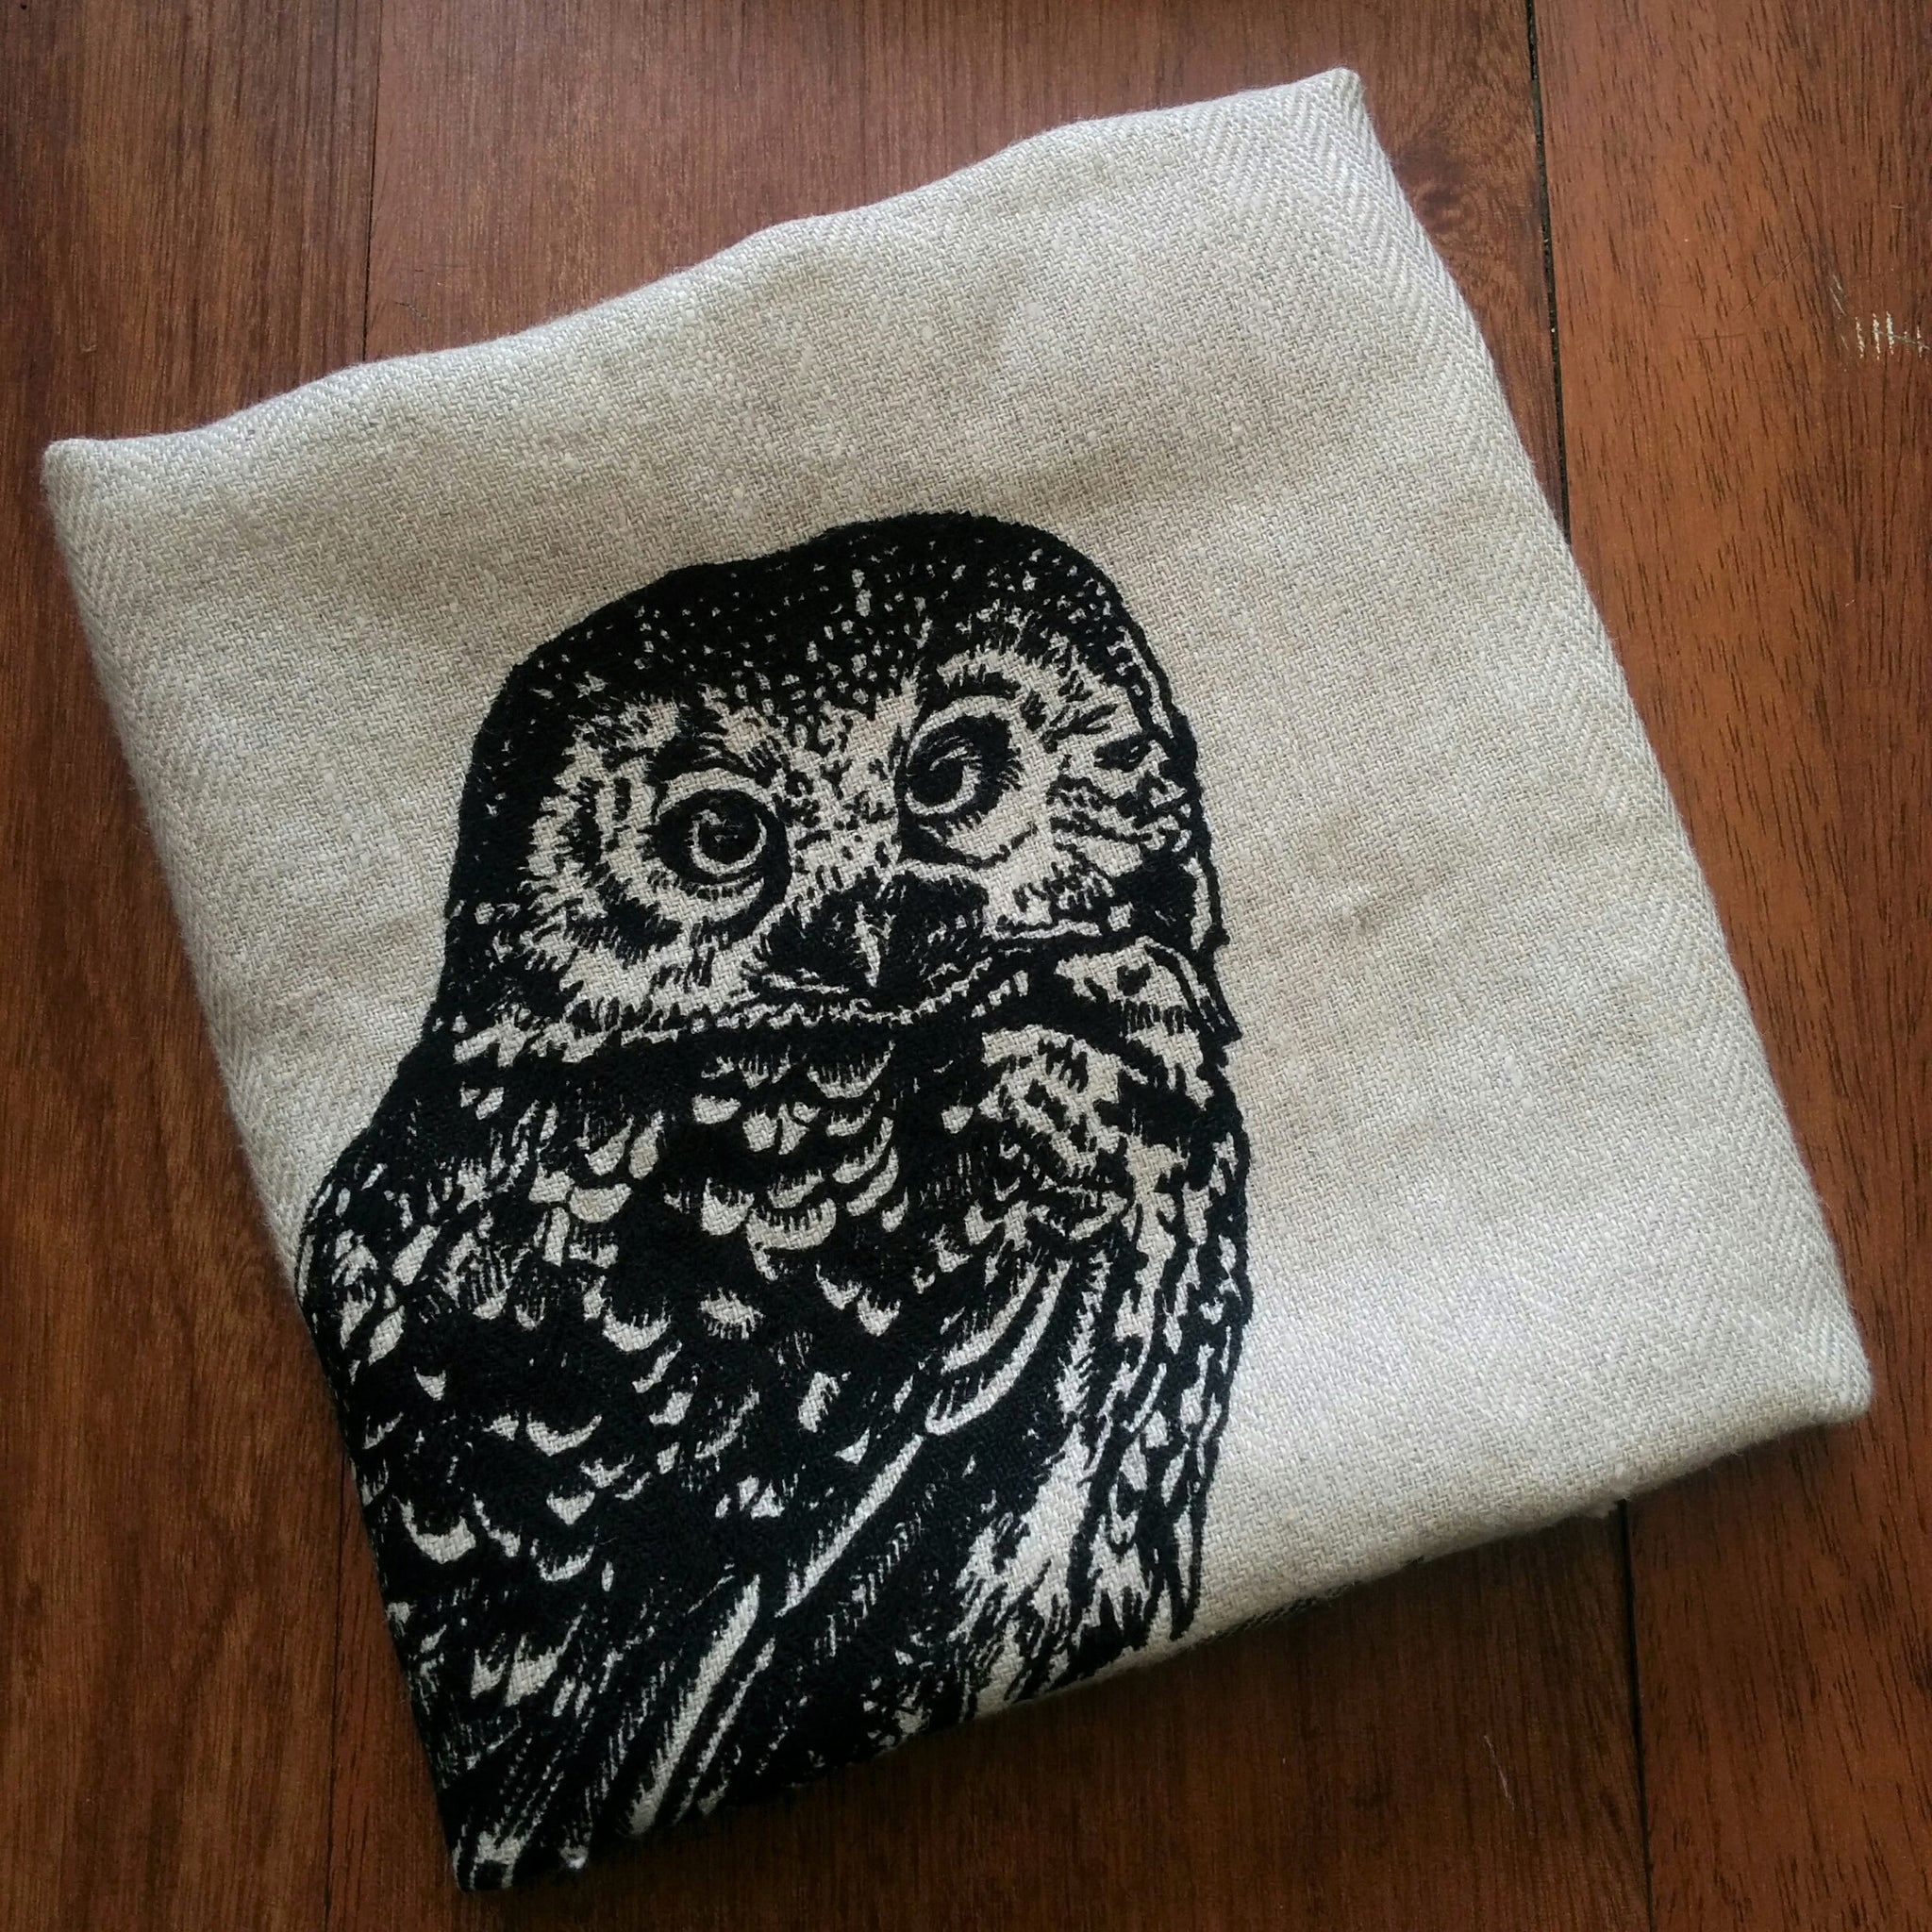 Wildlife Illustration Linen Tea Towel - Owl